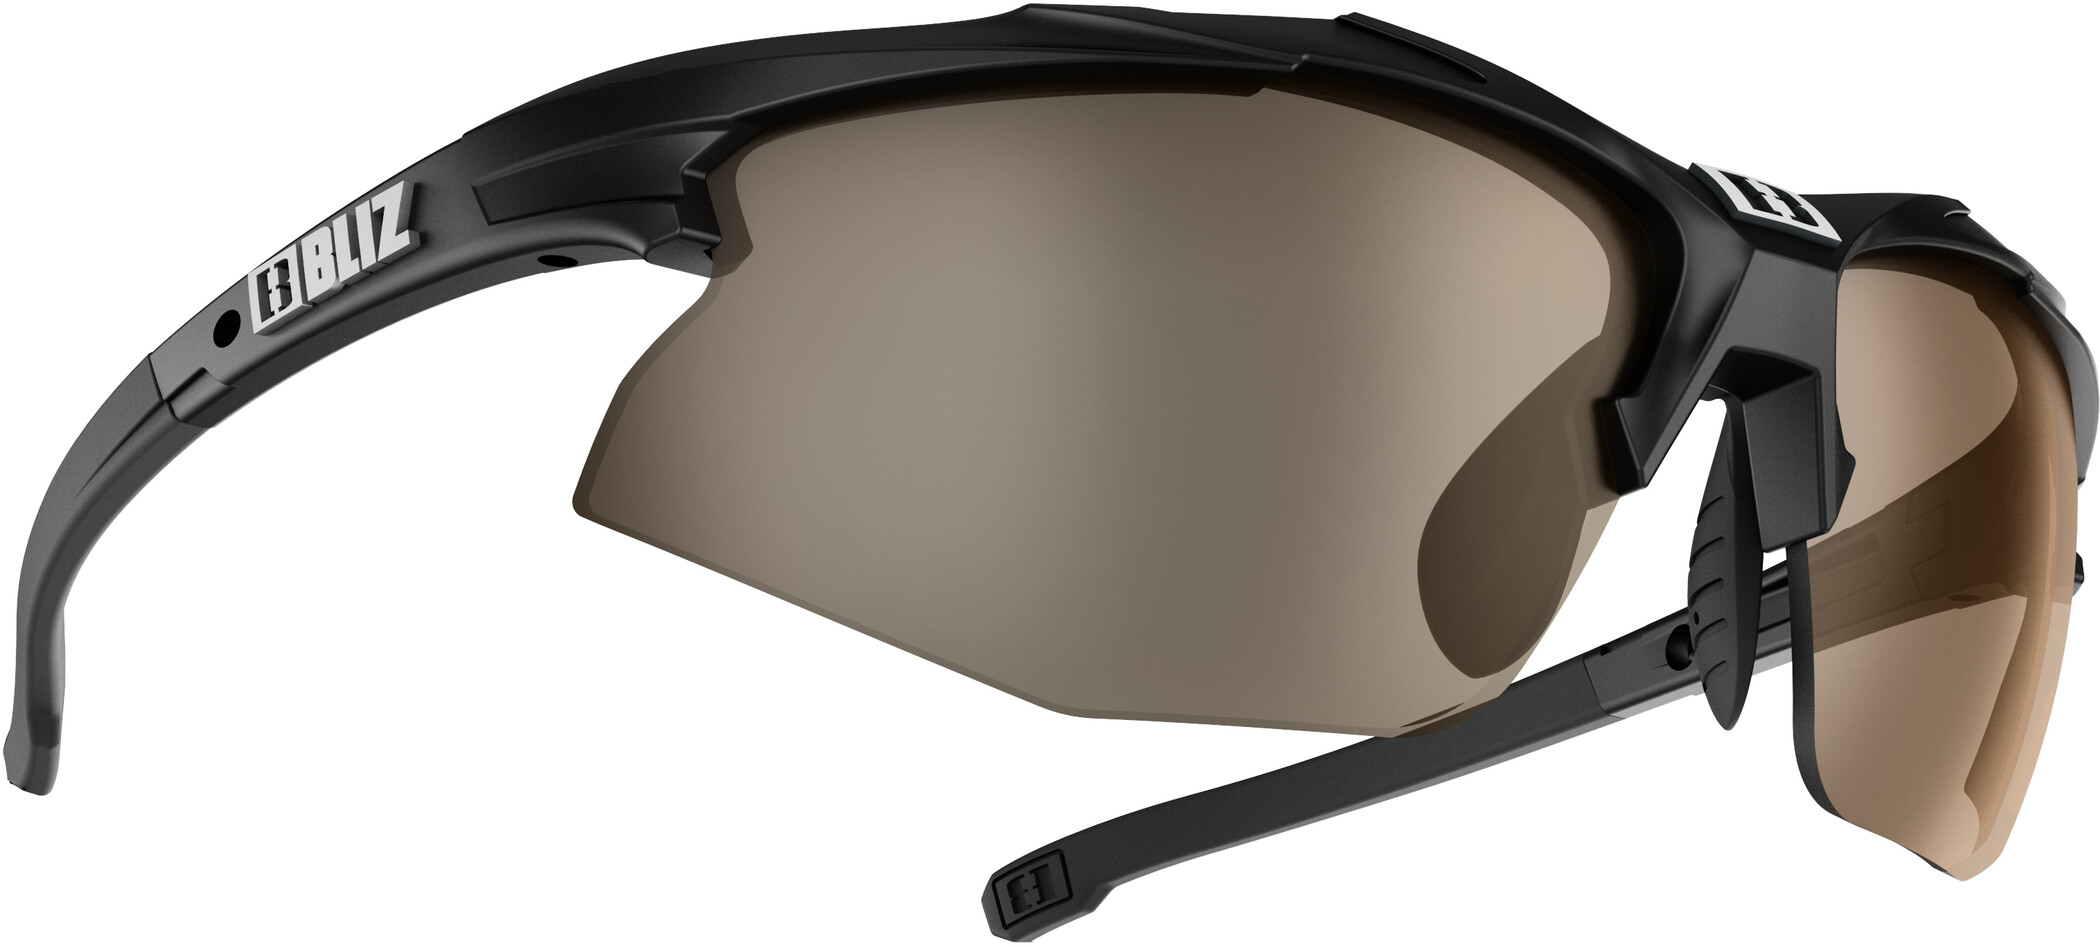 Bliz Hybrid M15 Smallface-briller, matt black/pol brown (2019) | Glasses